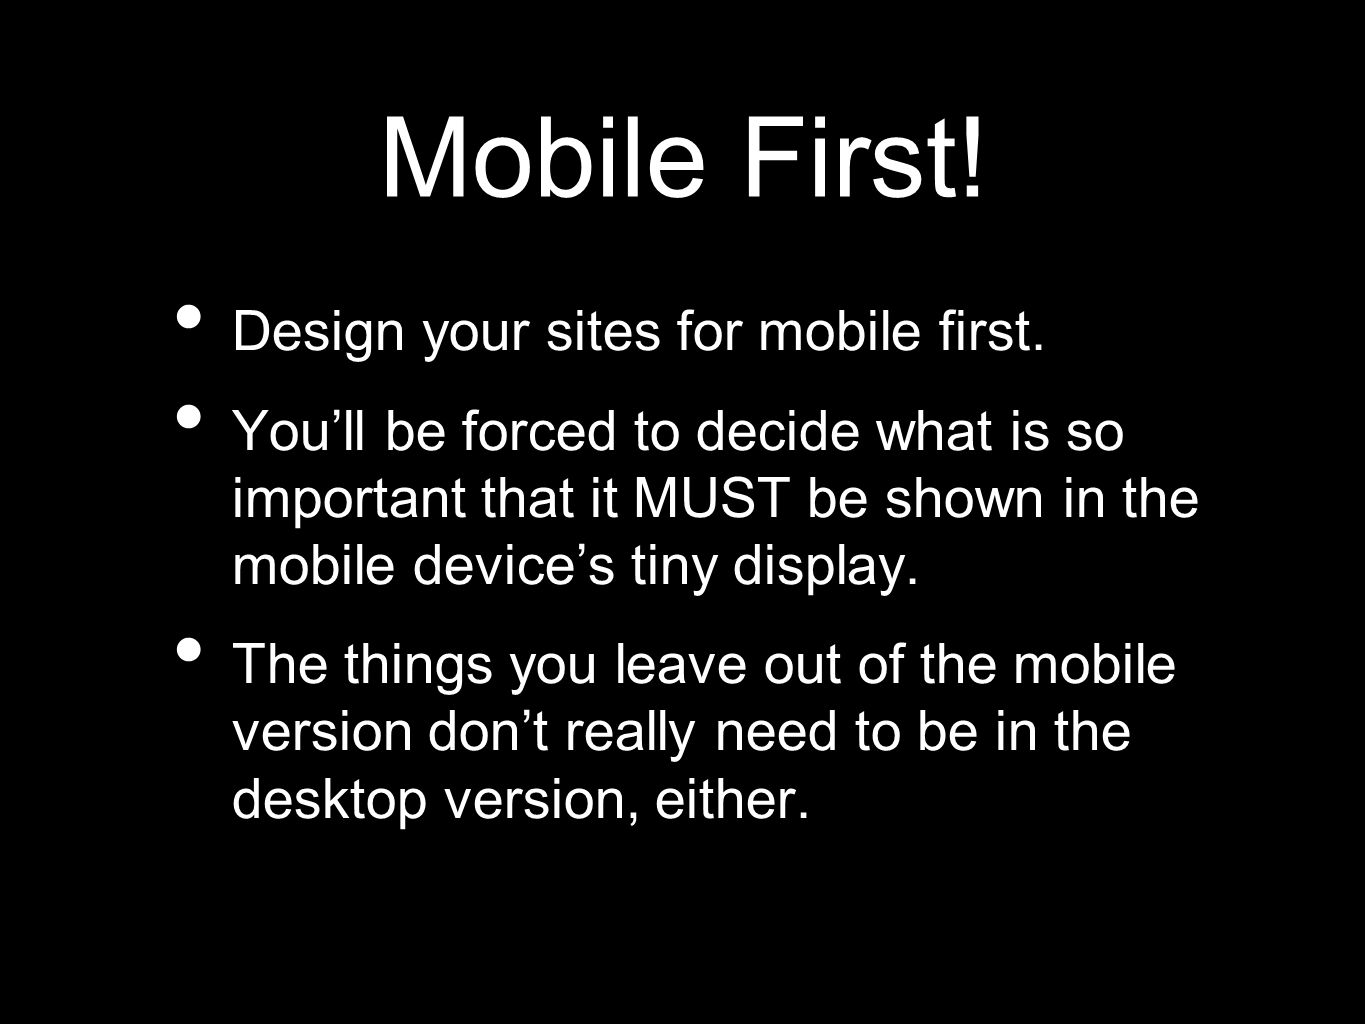 Mobile First. Design your sites for mobile first.